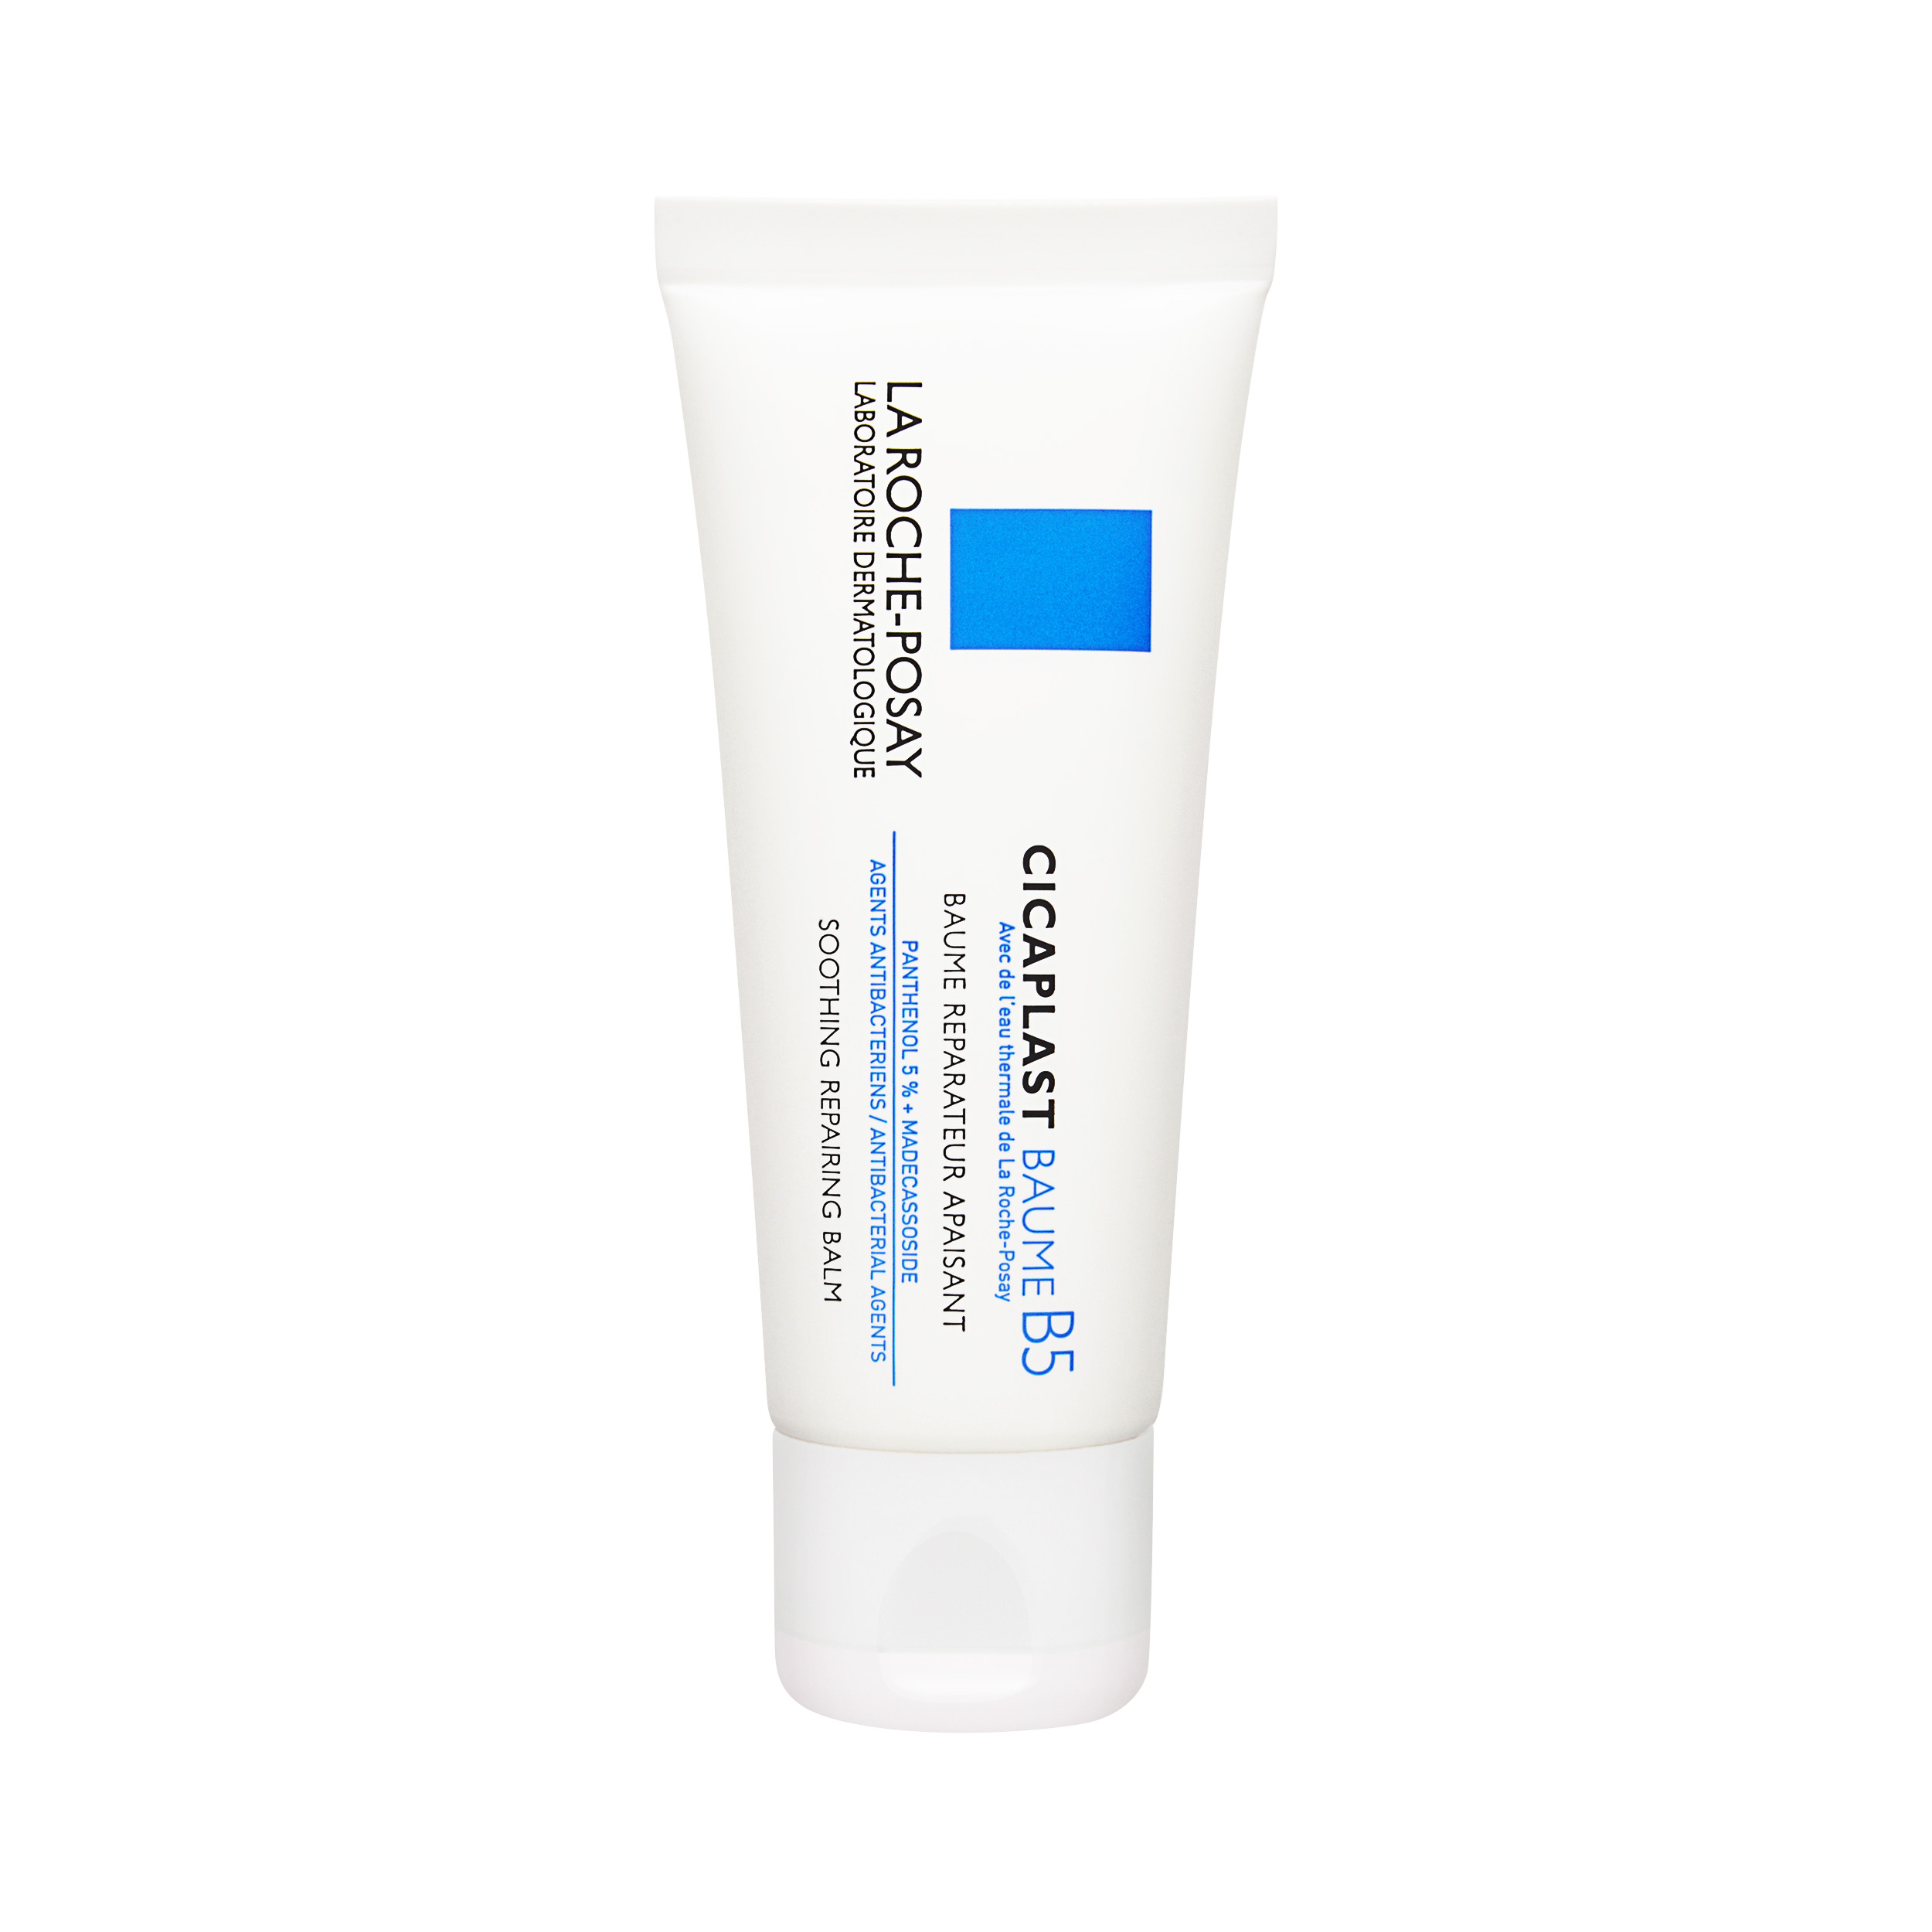 La Roche-Posay Cicaplast  Baume B5 Soothing Repairing Balm 40ml, from Cosme-De.com